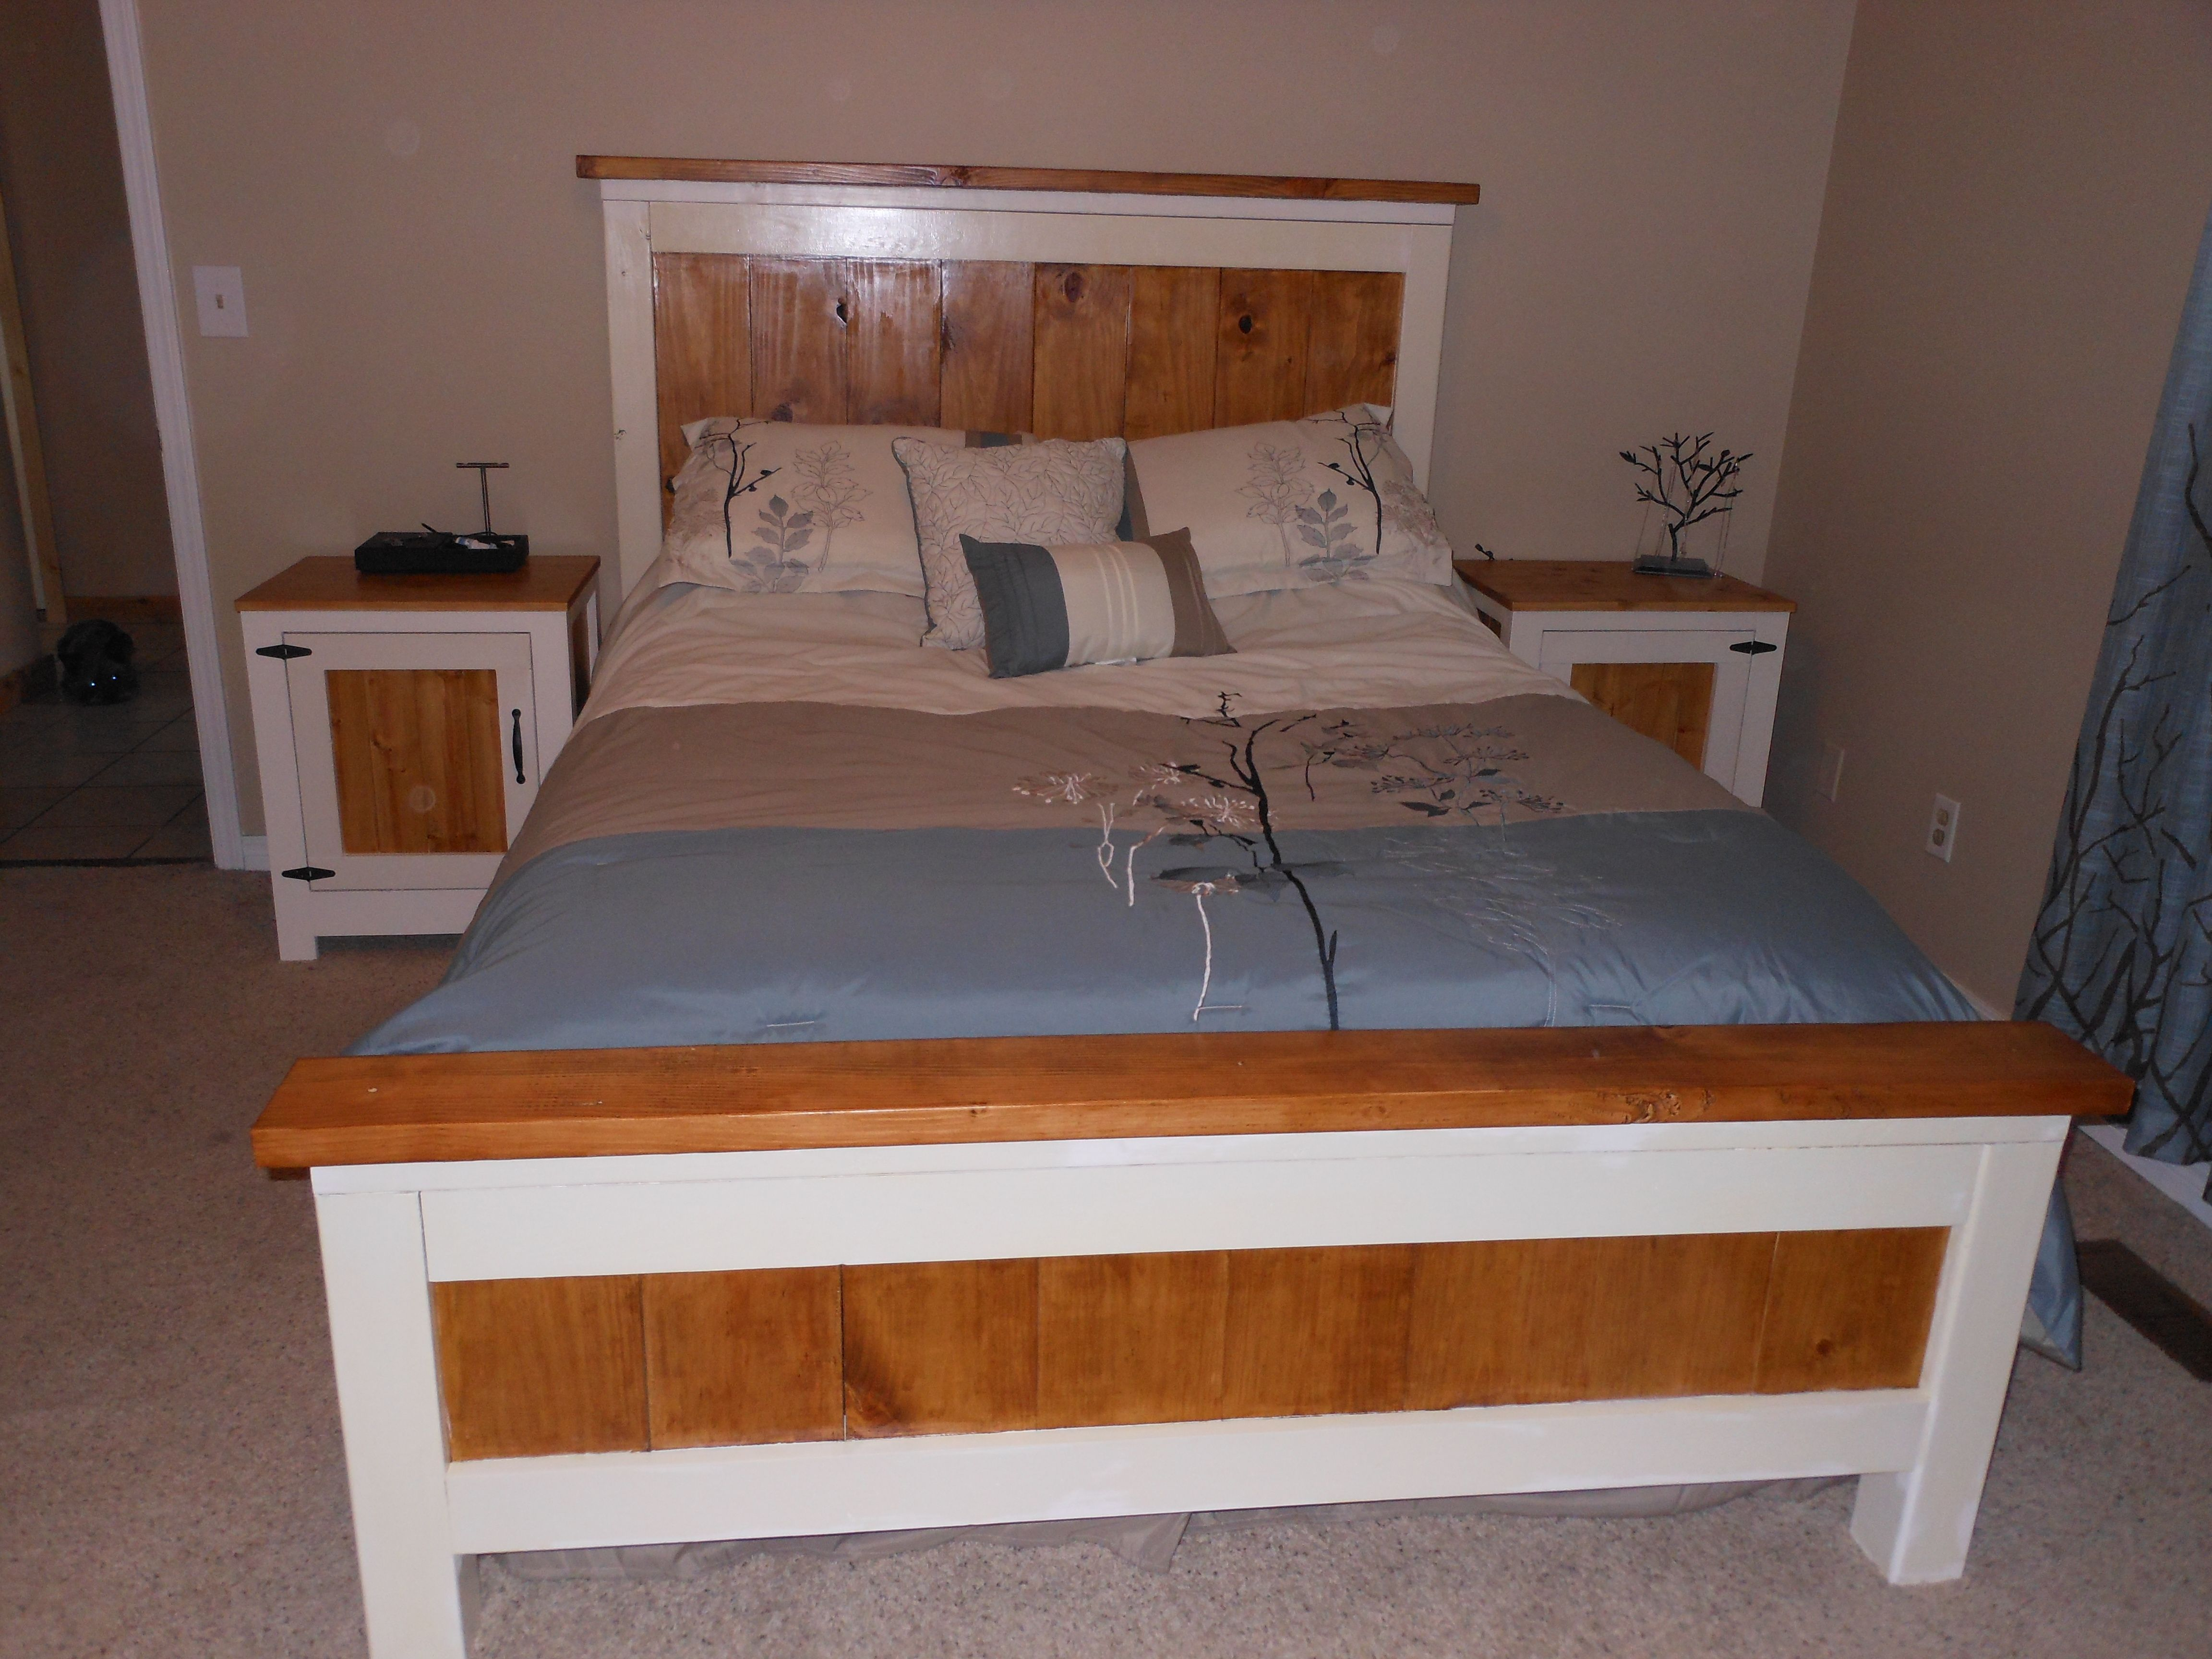 Best Farmhouse Queen Bed And Kentwood Nightstands Do It 400 x 300